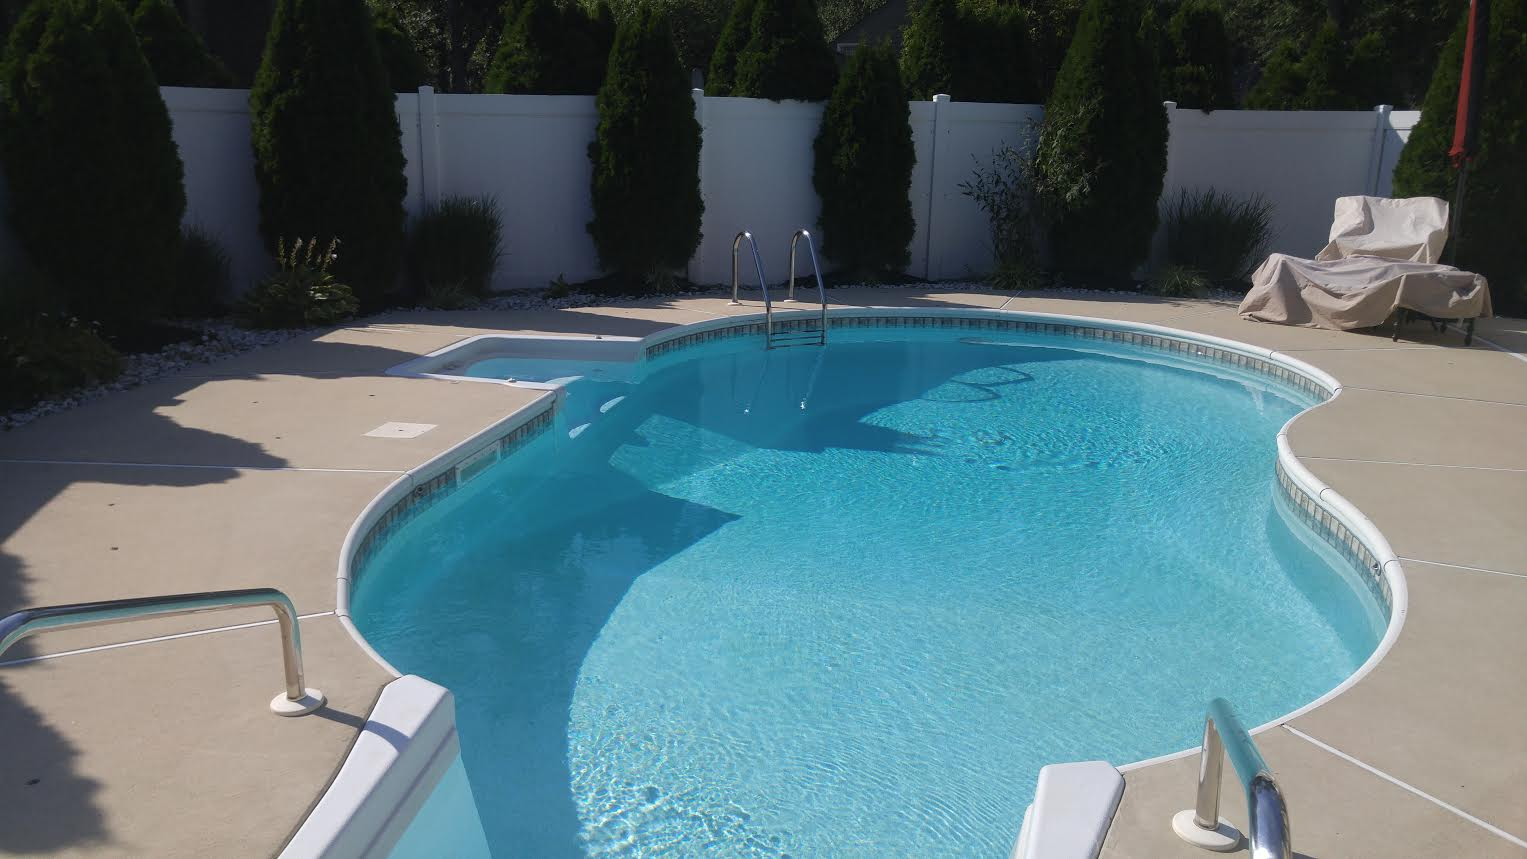 Easy swimming pool care and maintenance clean pool and spa - Swimming pool green water treatment ...